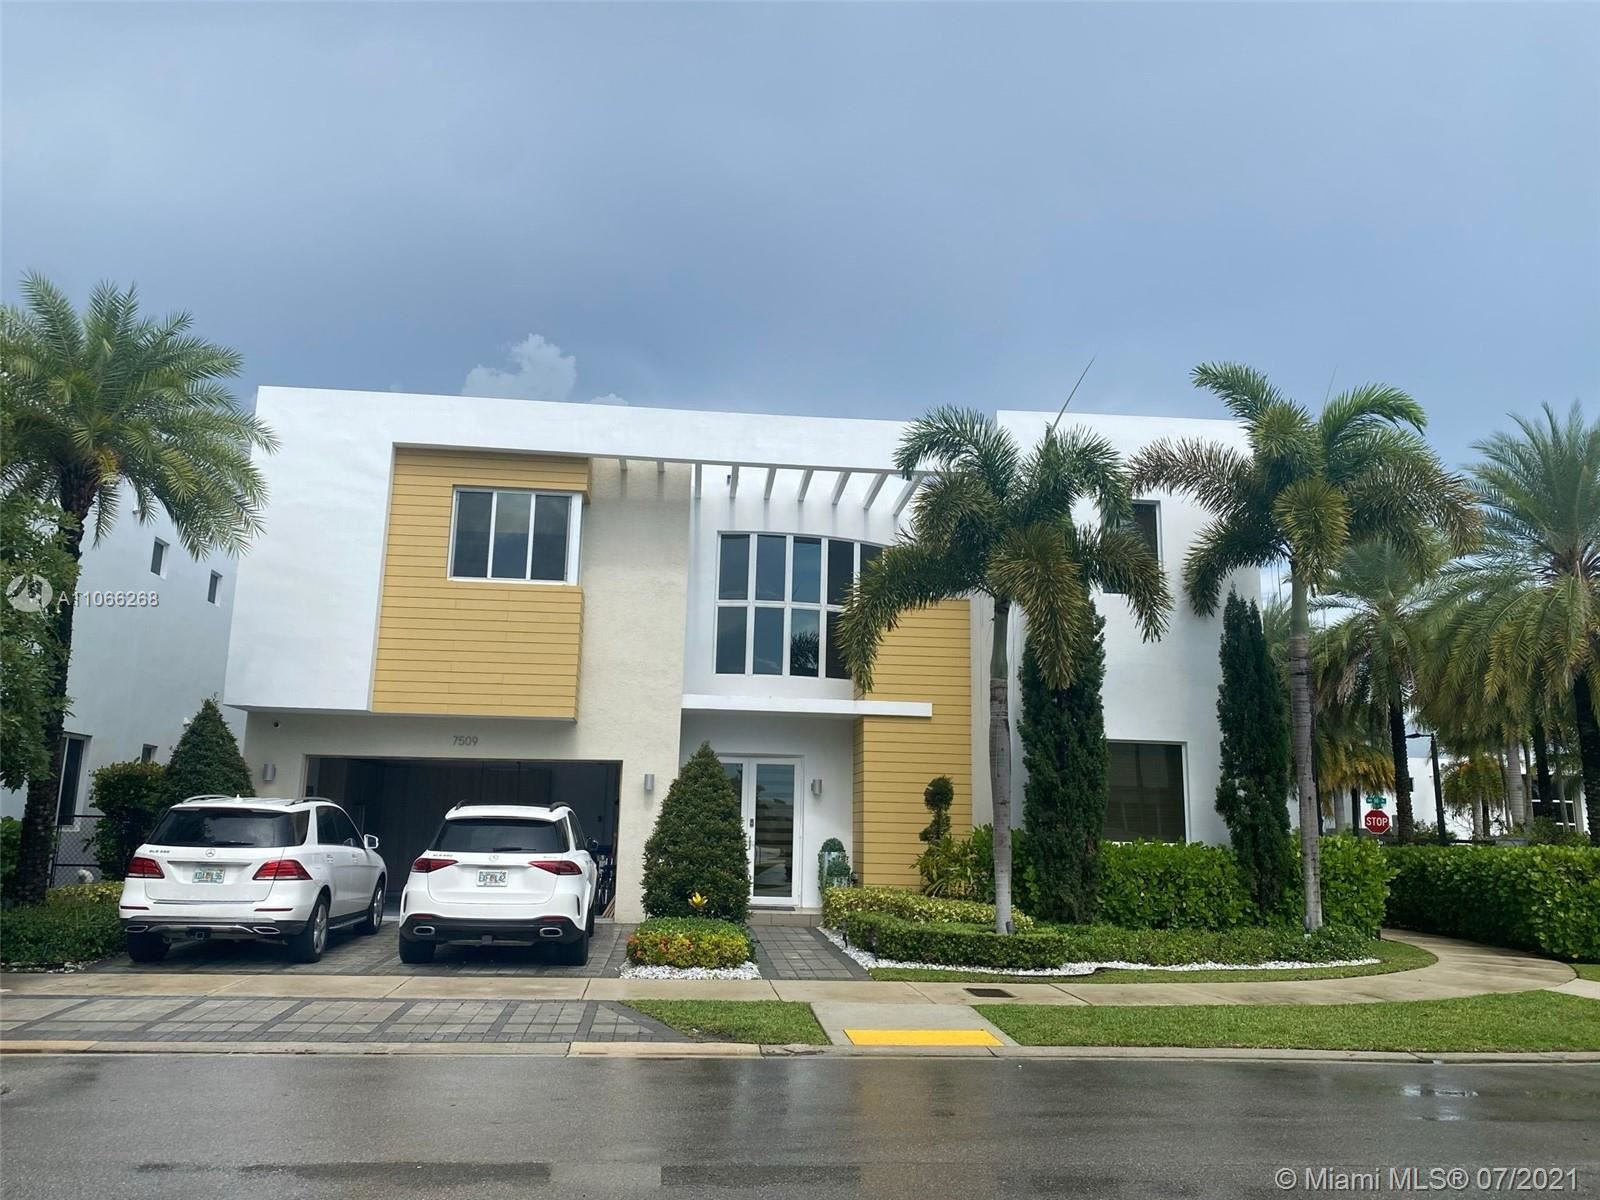 7509 NW 99th Ave, Doral, FL 33178 - #: A11066268